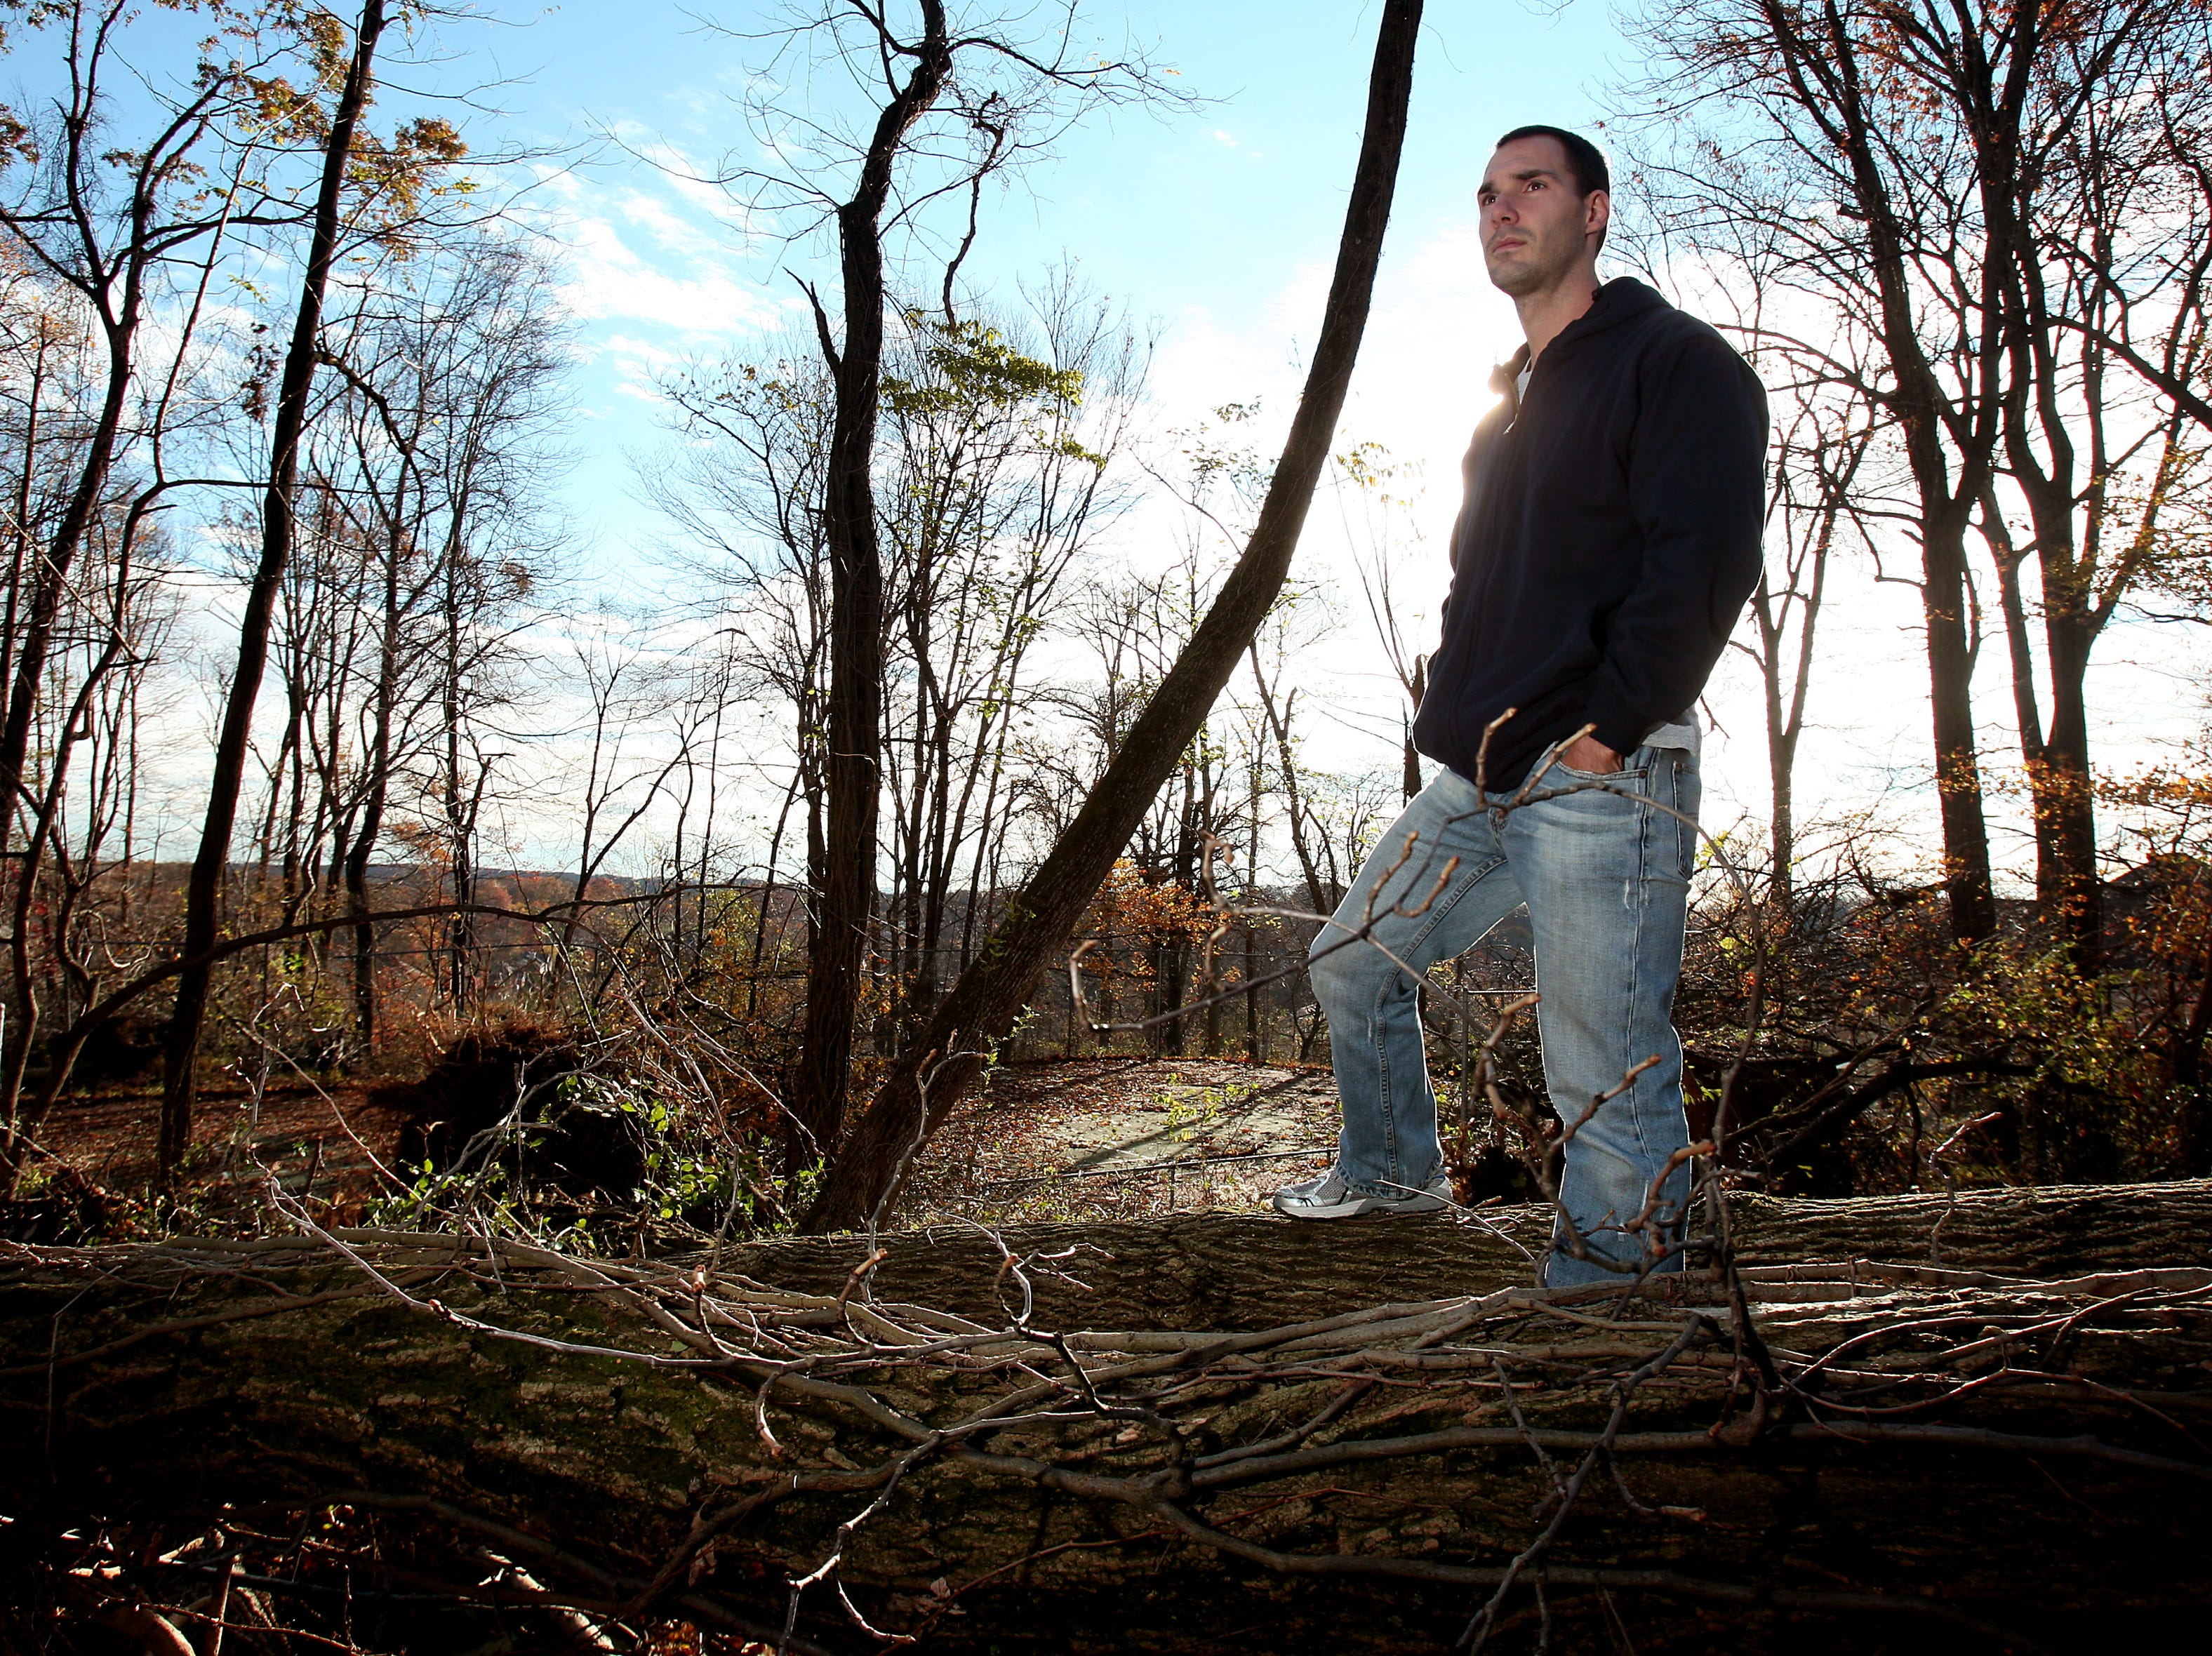 Morristown, NJ- November 2, 2012--Matthew Iglesias surveys his property on Stratford Court in Morristown, NJ. Matthew and his wife Kristi just closed on the home three weeks ago. During Hurricane Sandy, over twenty large tree came down on and around their home making the property and streets around it inaccessible. 